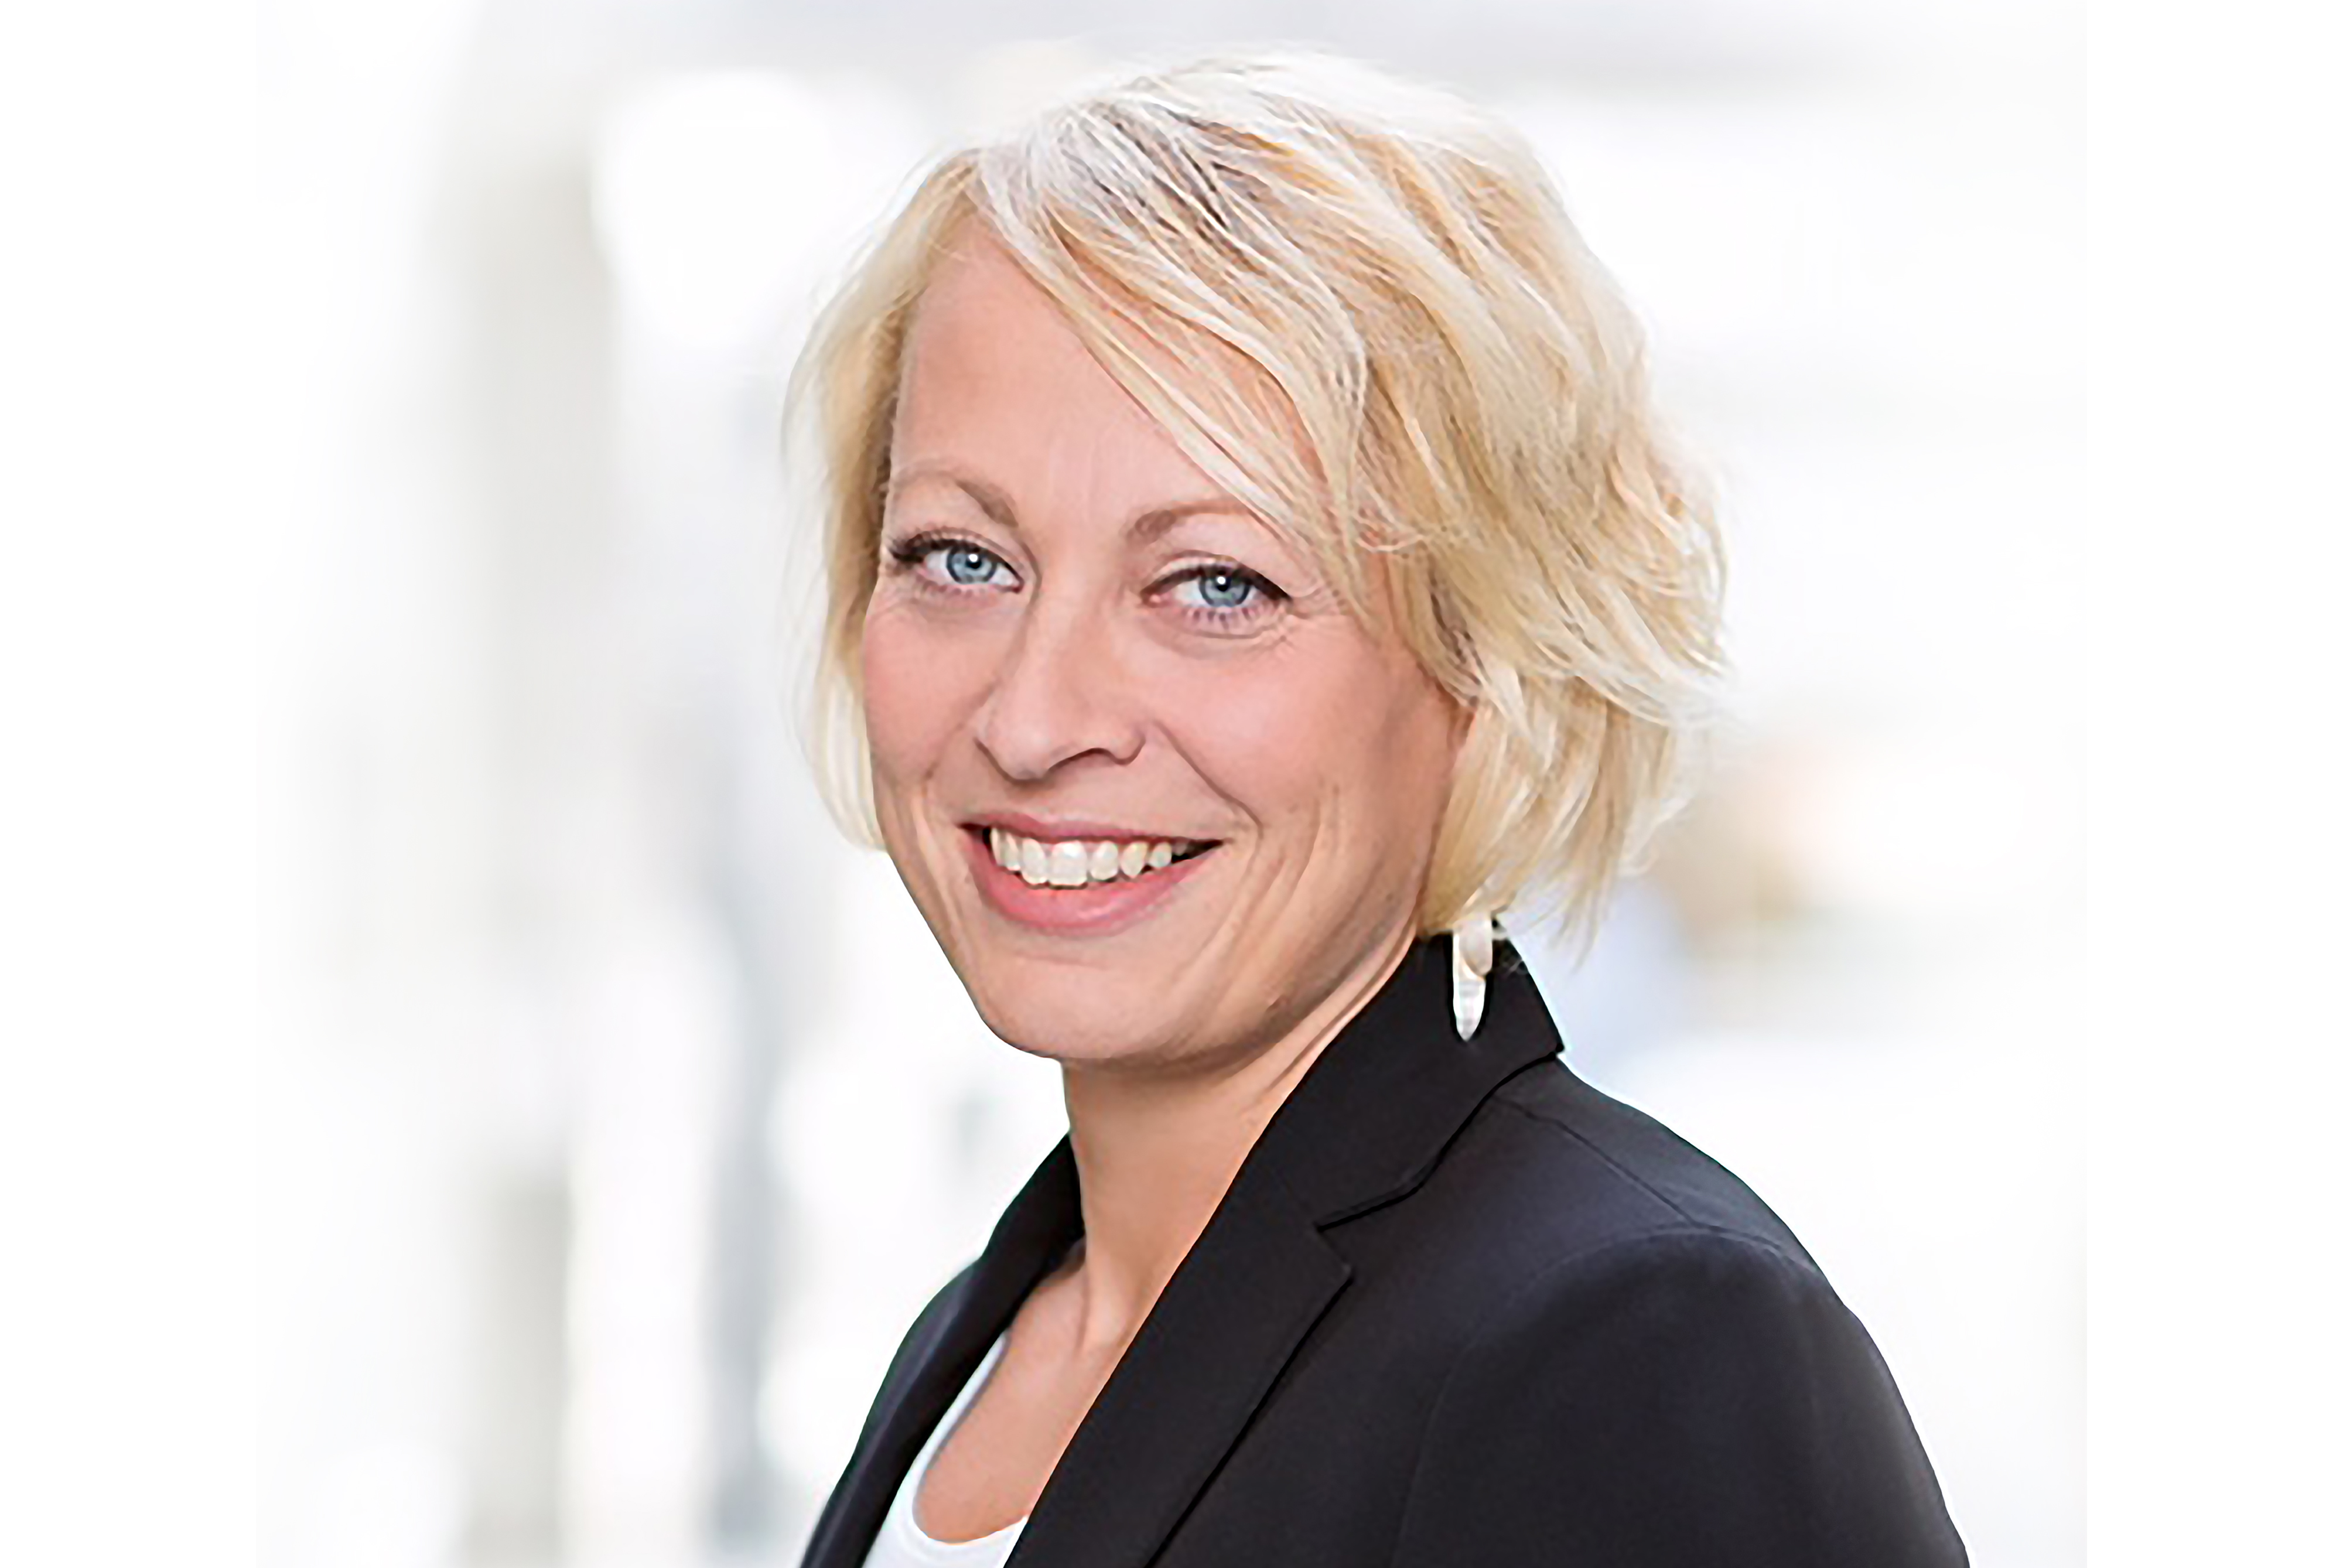 Hanna Ståhl appointed Managing Director of University Services